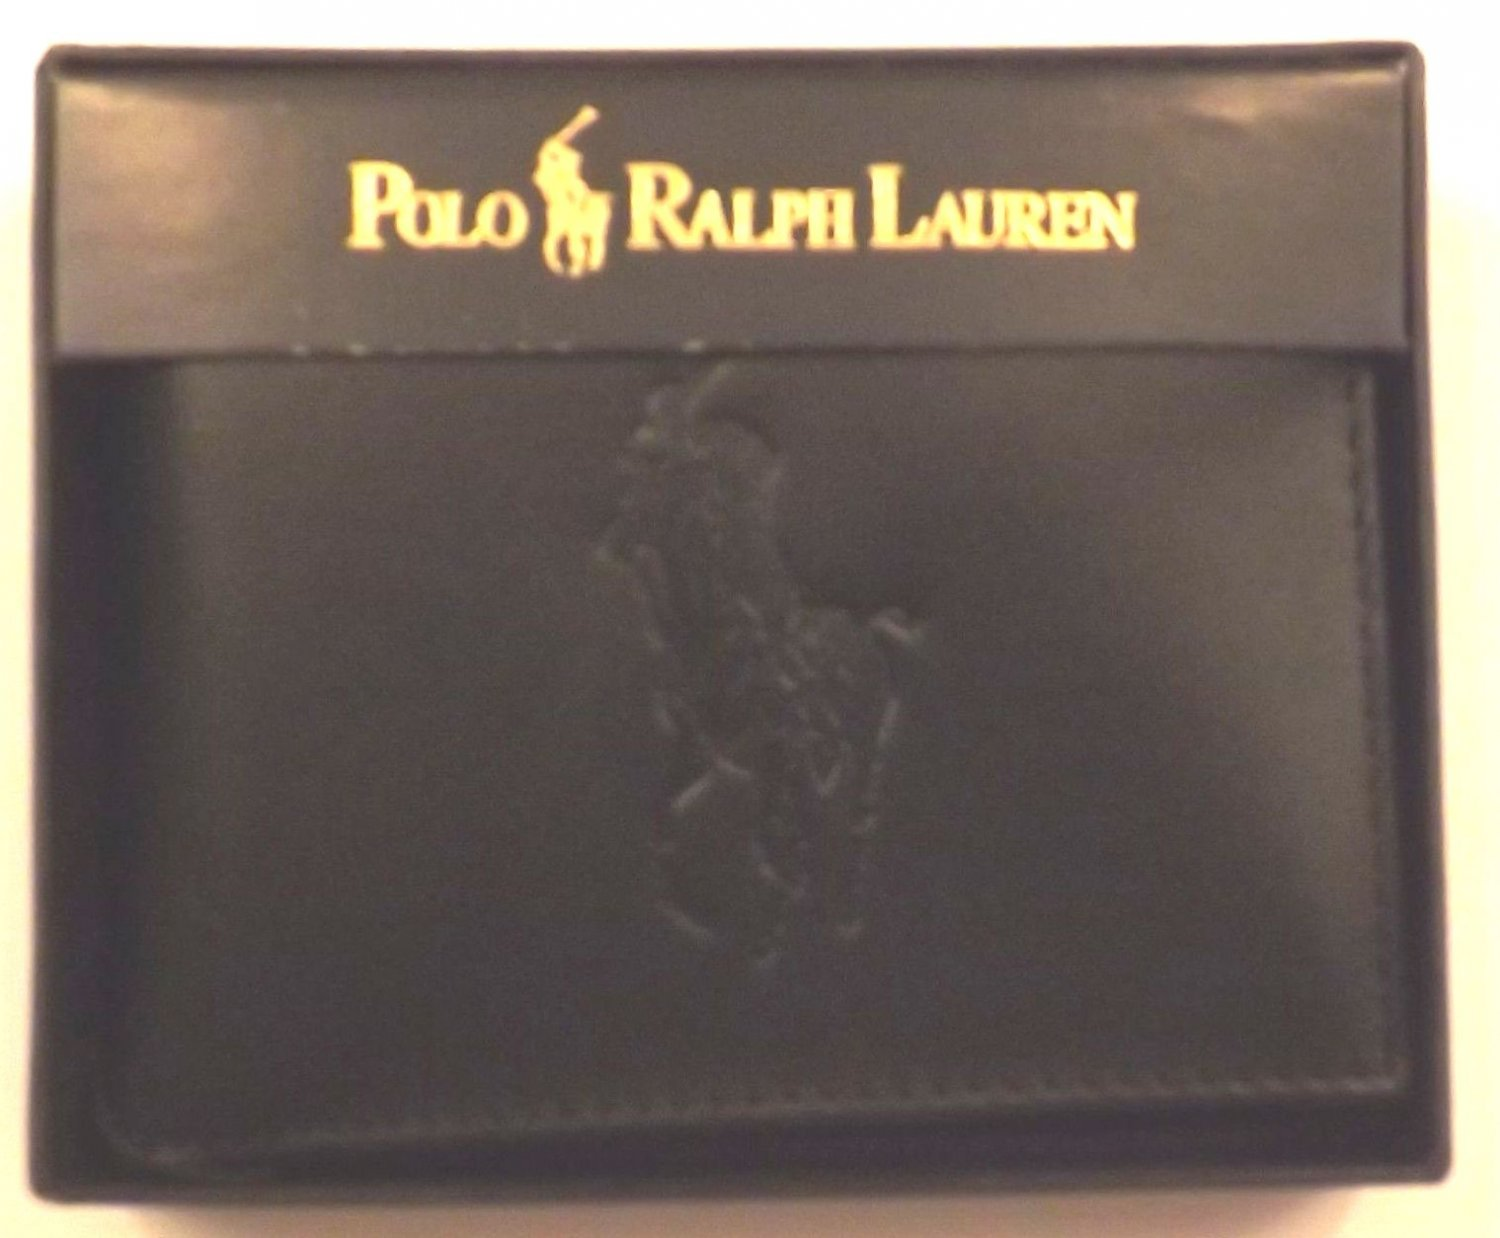 Polo ralph lauren online coupons free shipping